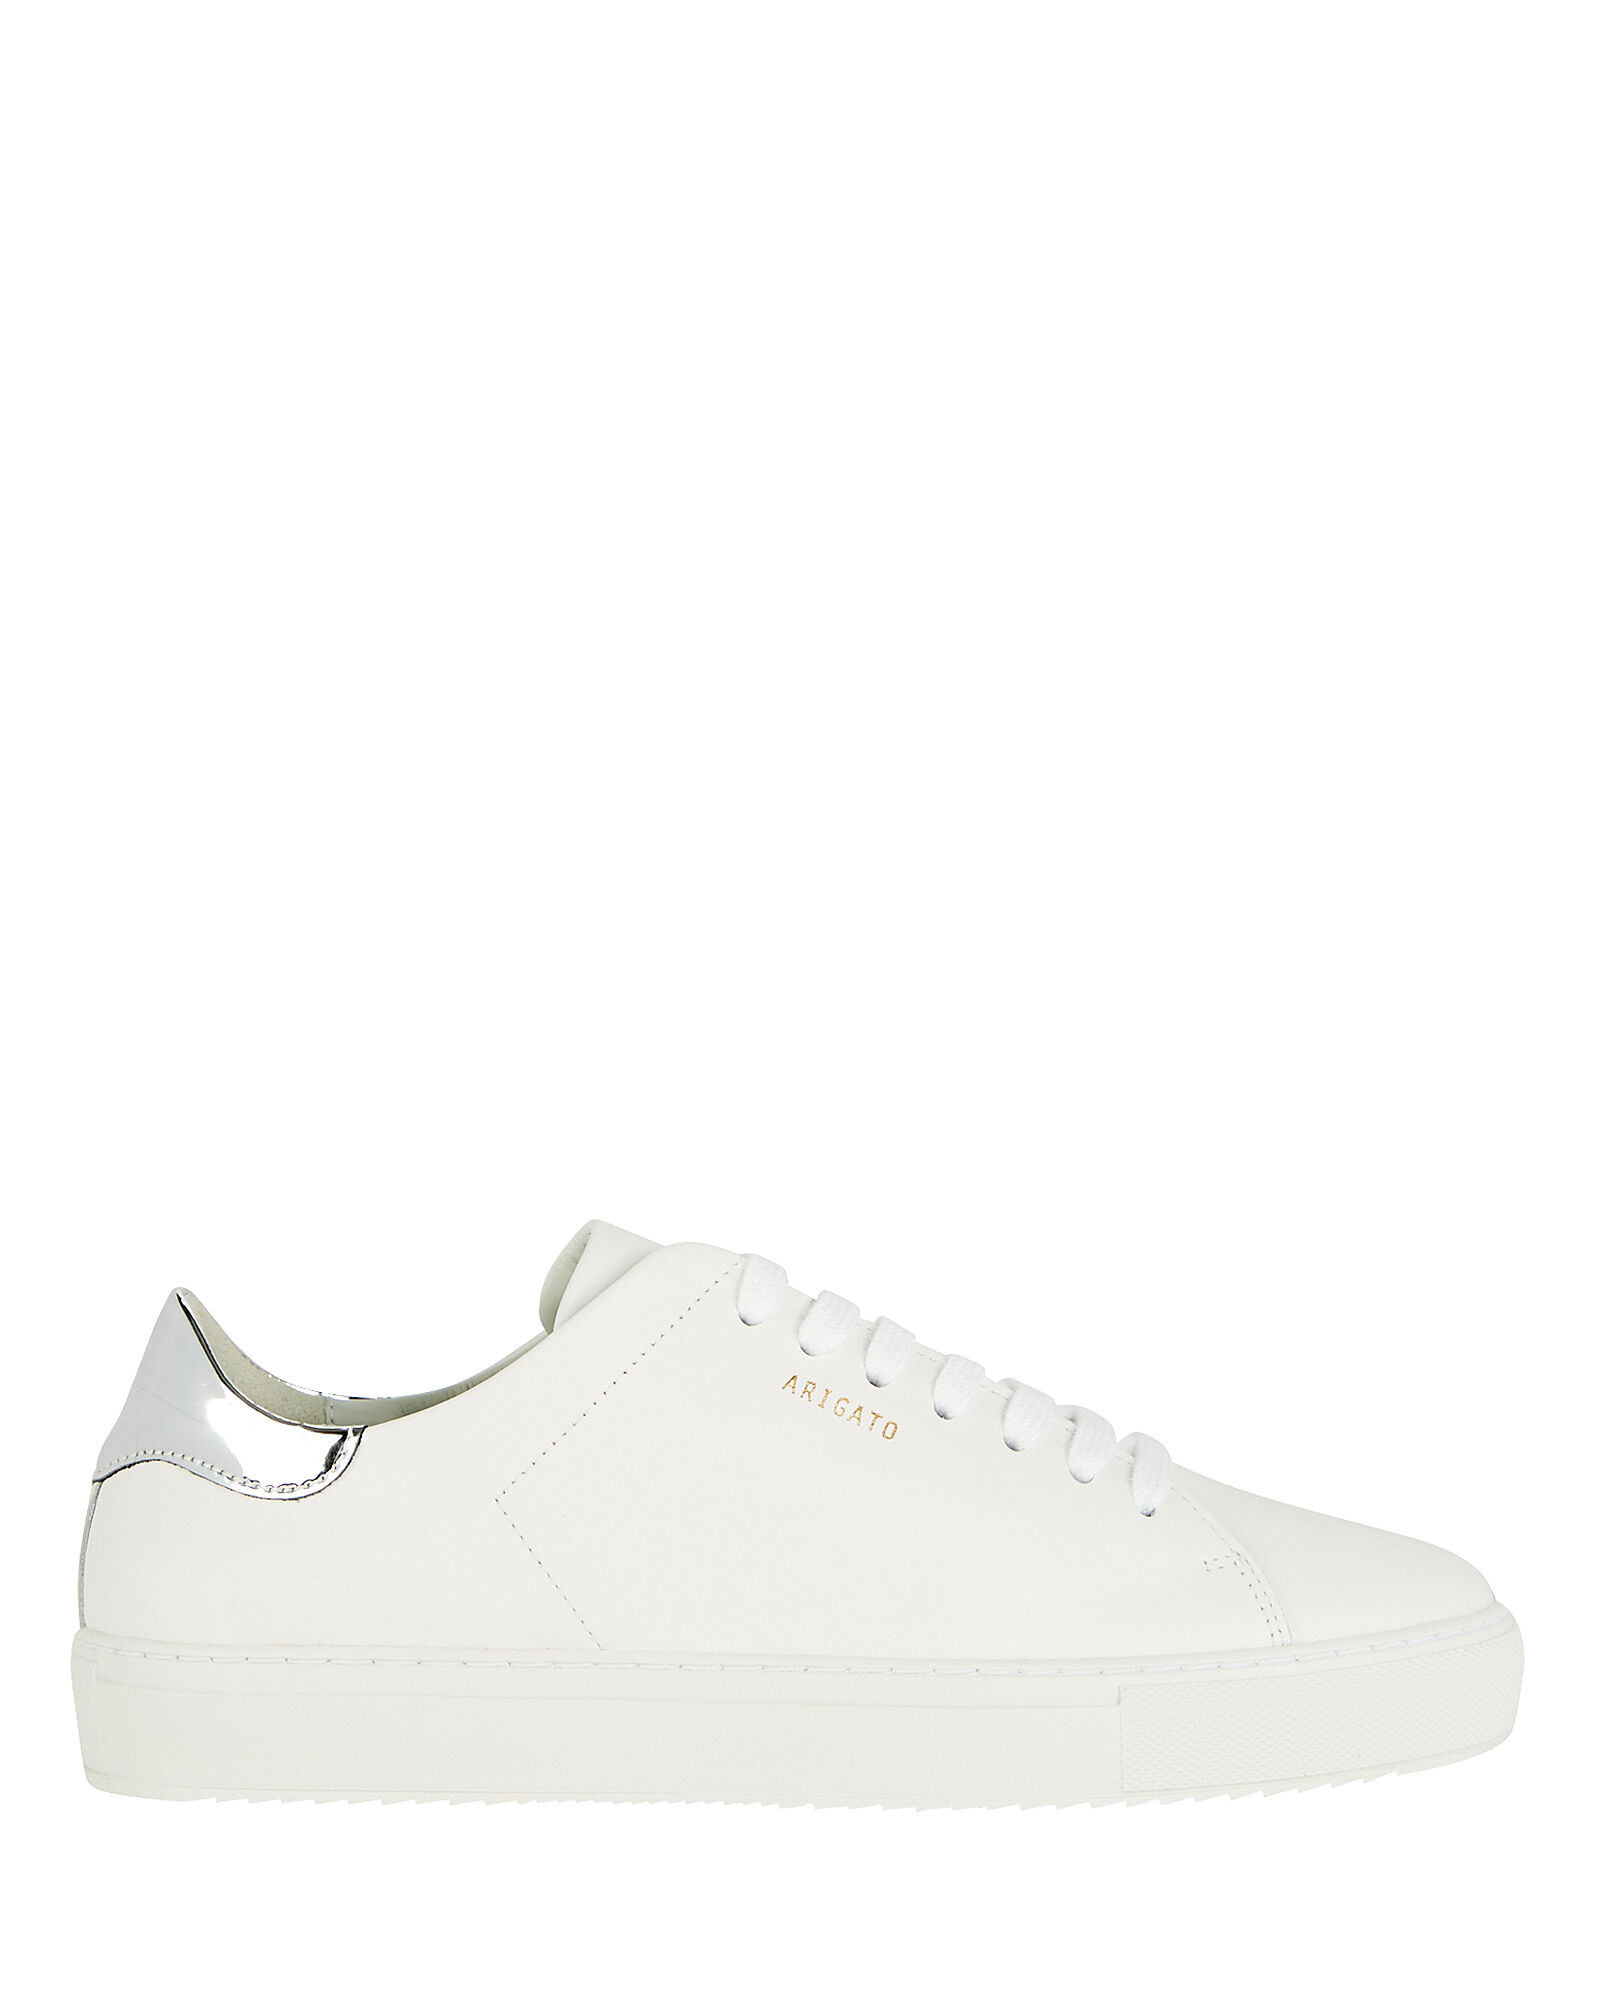 Clean 90 Leather Sneakers, WHITE/SILVER, hi-res